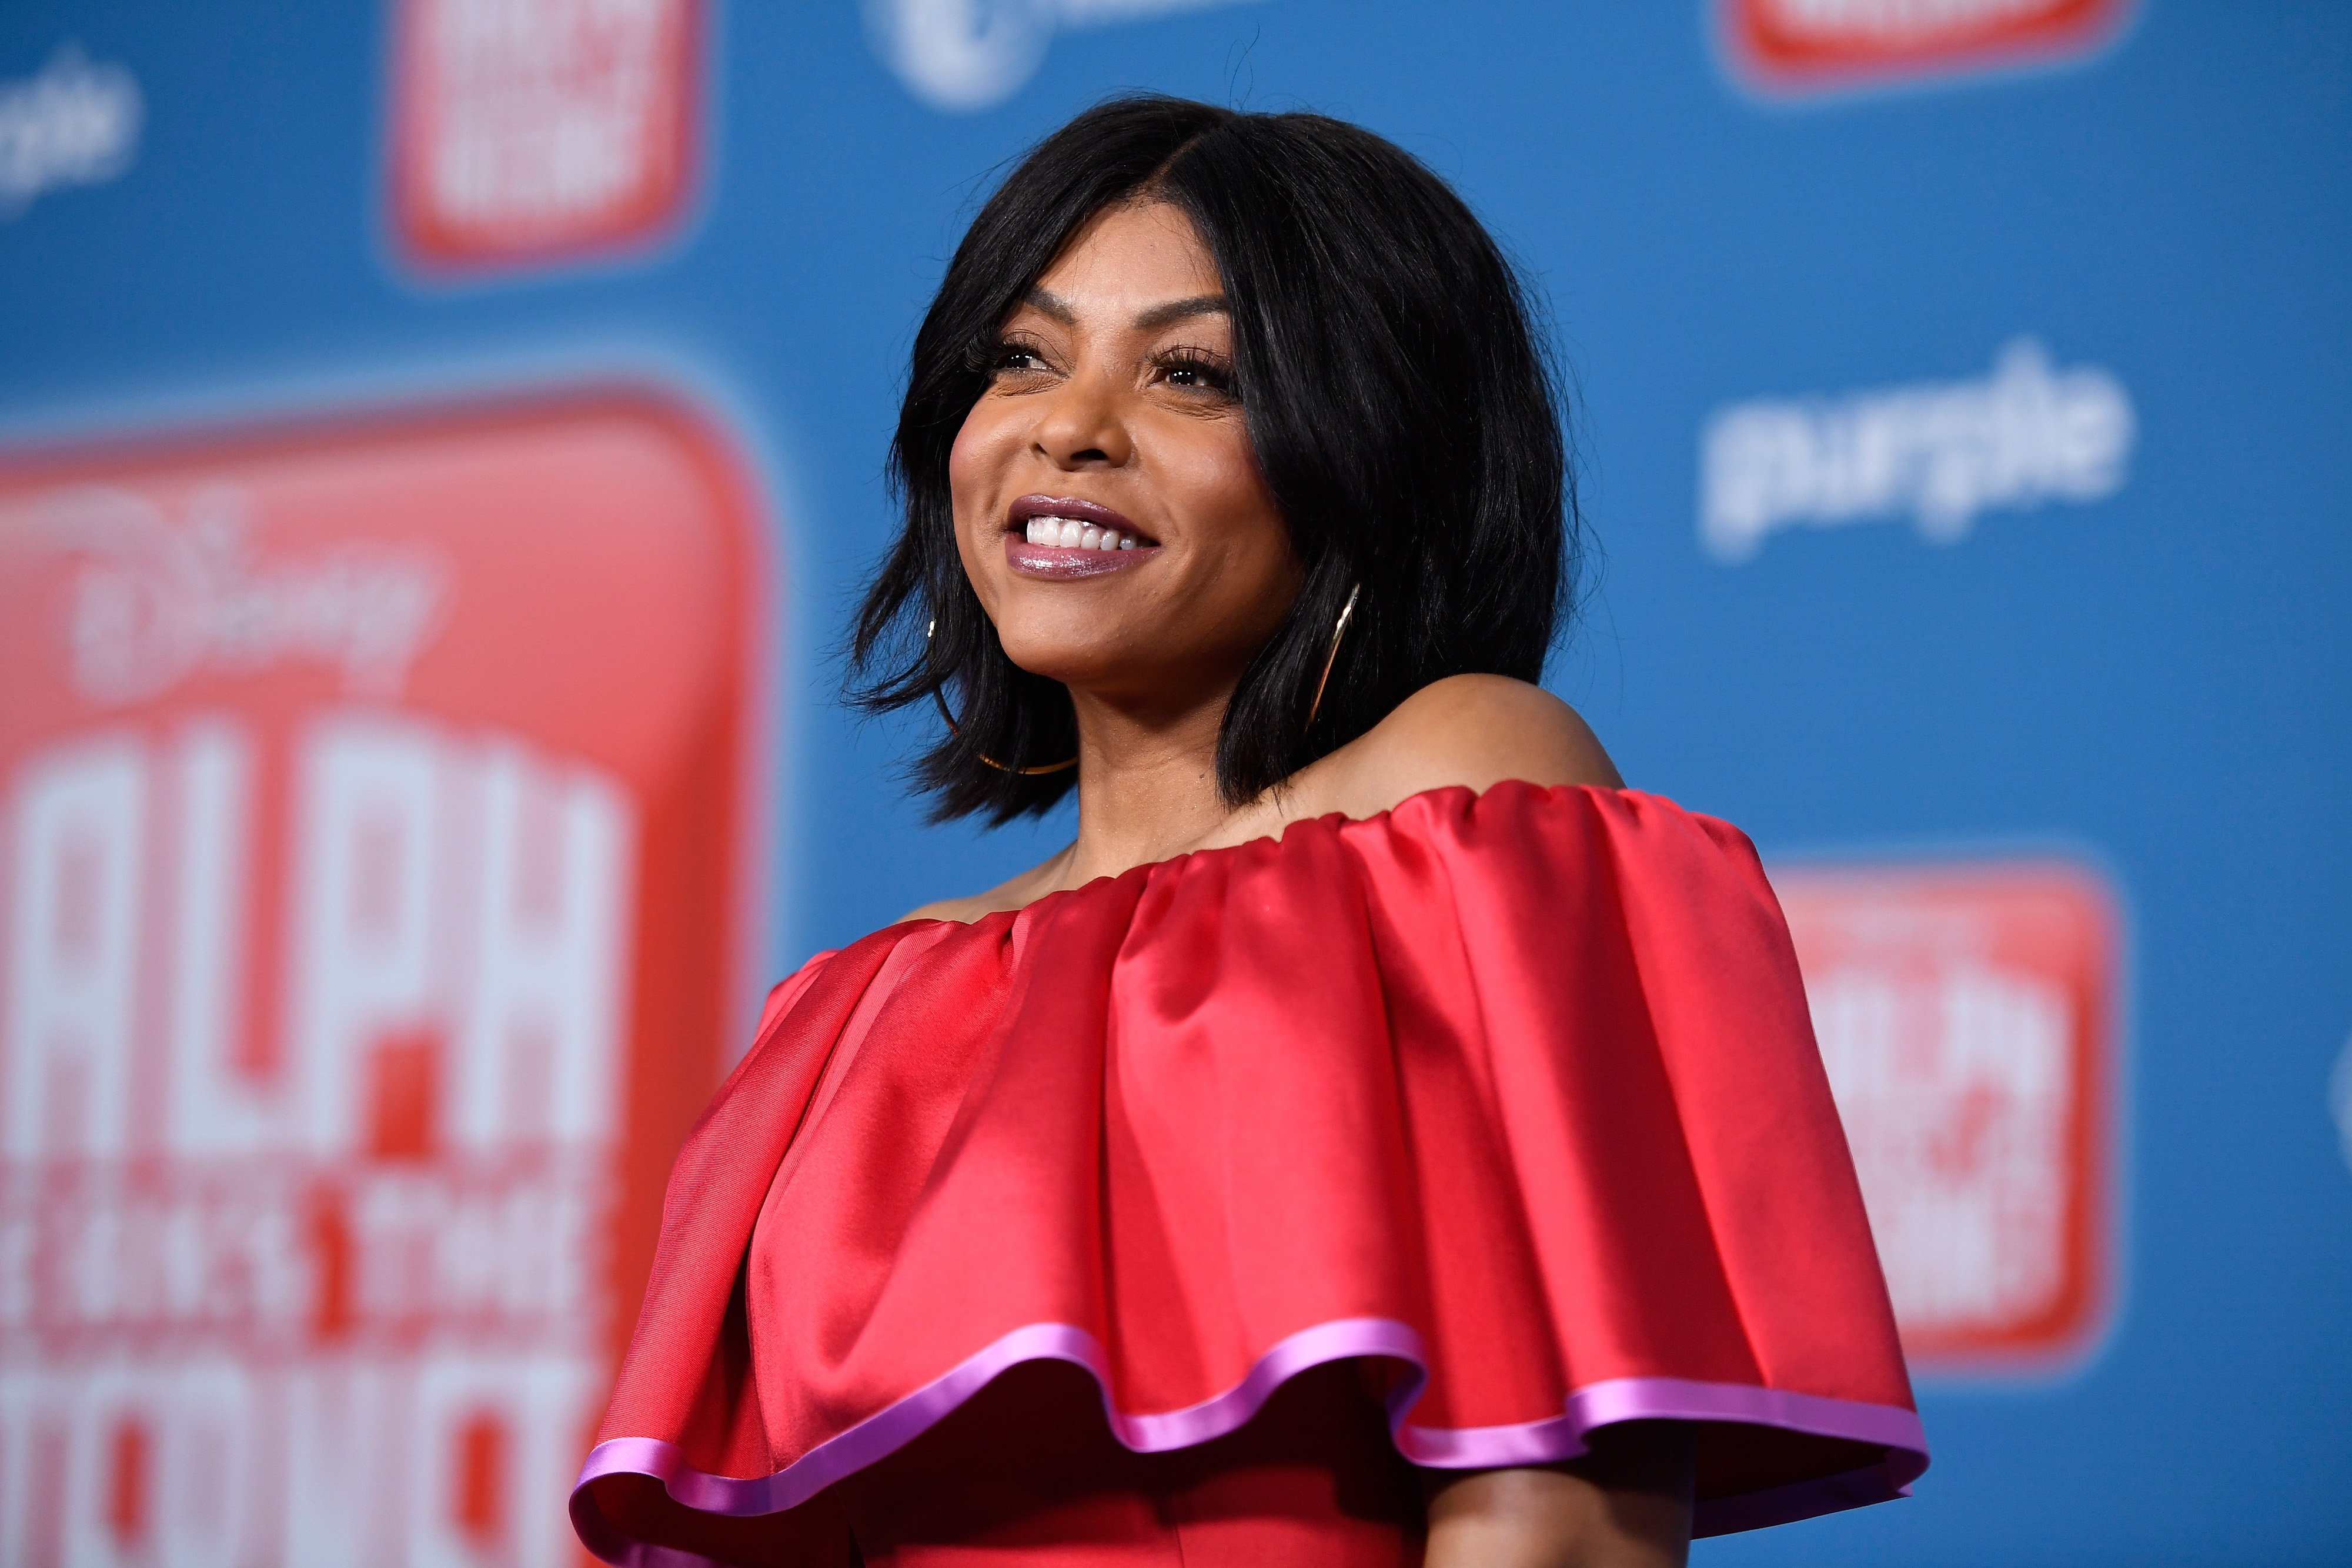 """Taraji P. Henson at the premiere of """"Ralph Breaks the Internet"""" on November 5, 2018 in Los Angeles, California. 